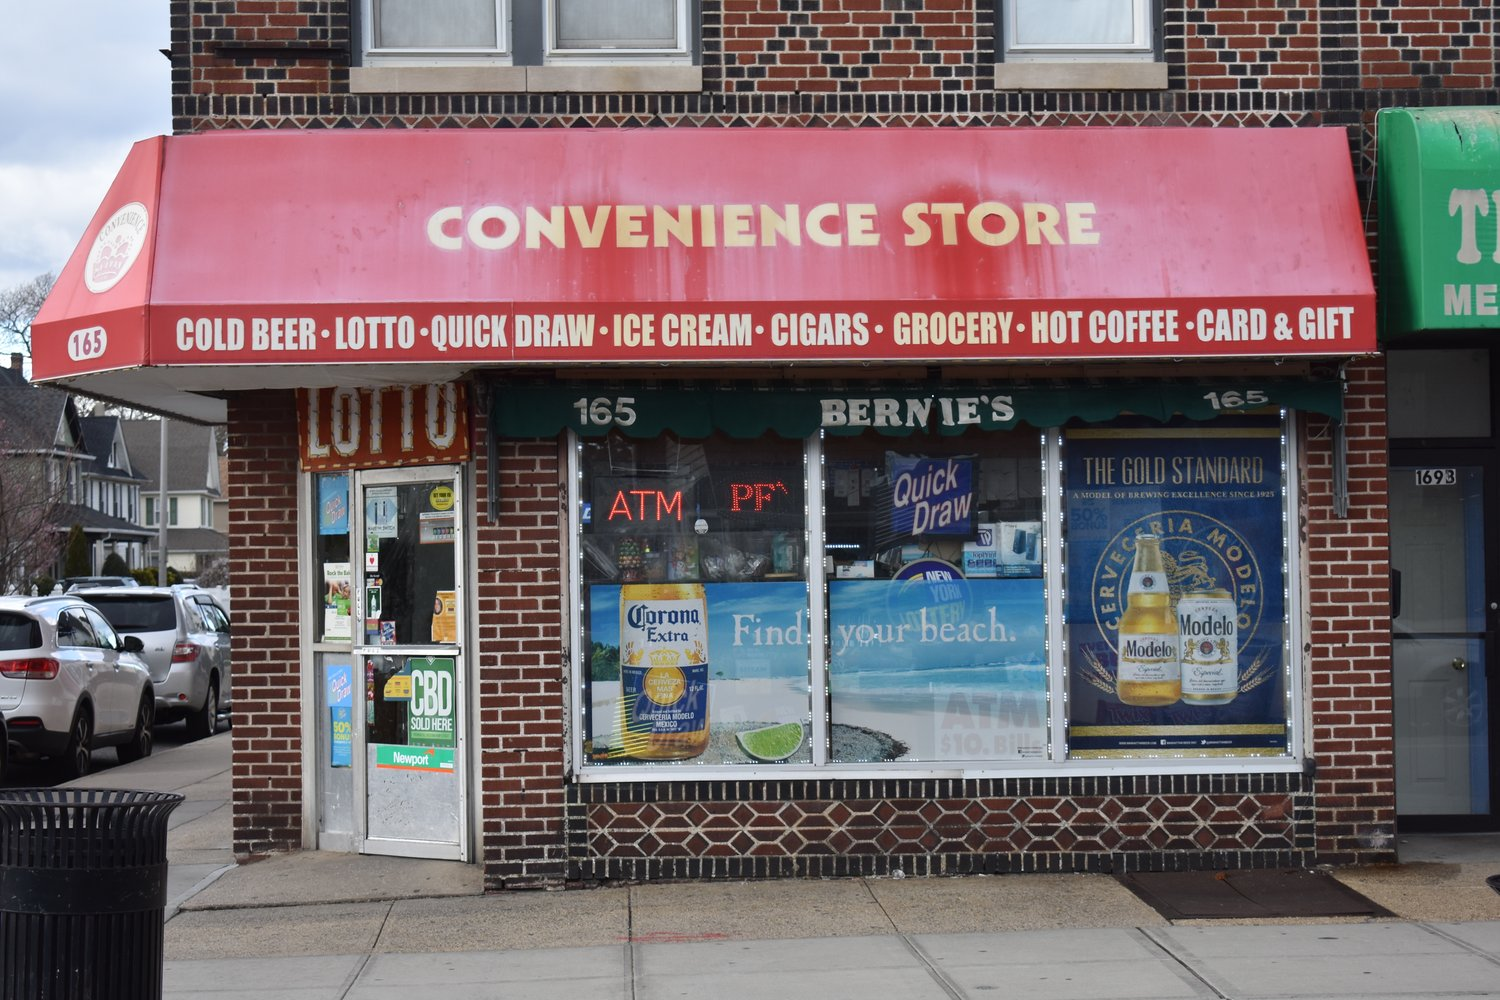 Rockville Centre police arrested an employee at the store on 165 Maple Ave. for selling vape products to underage customers.